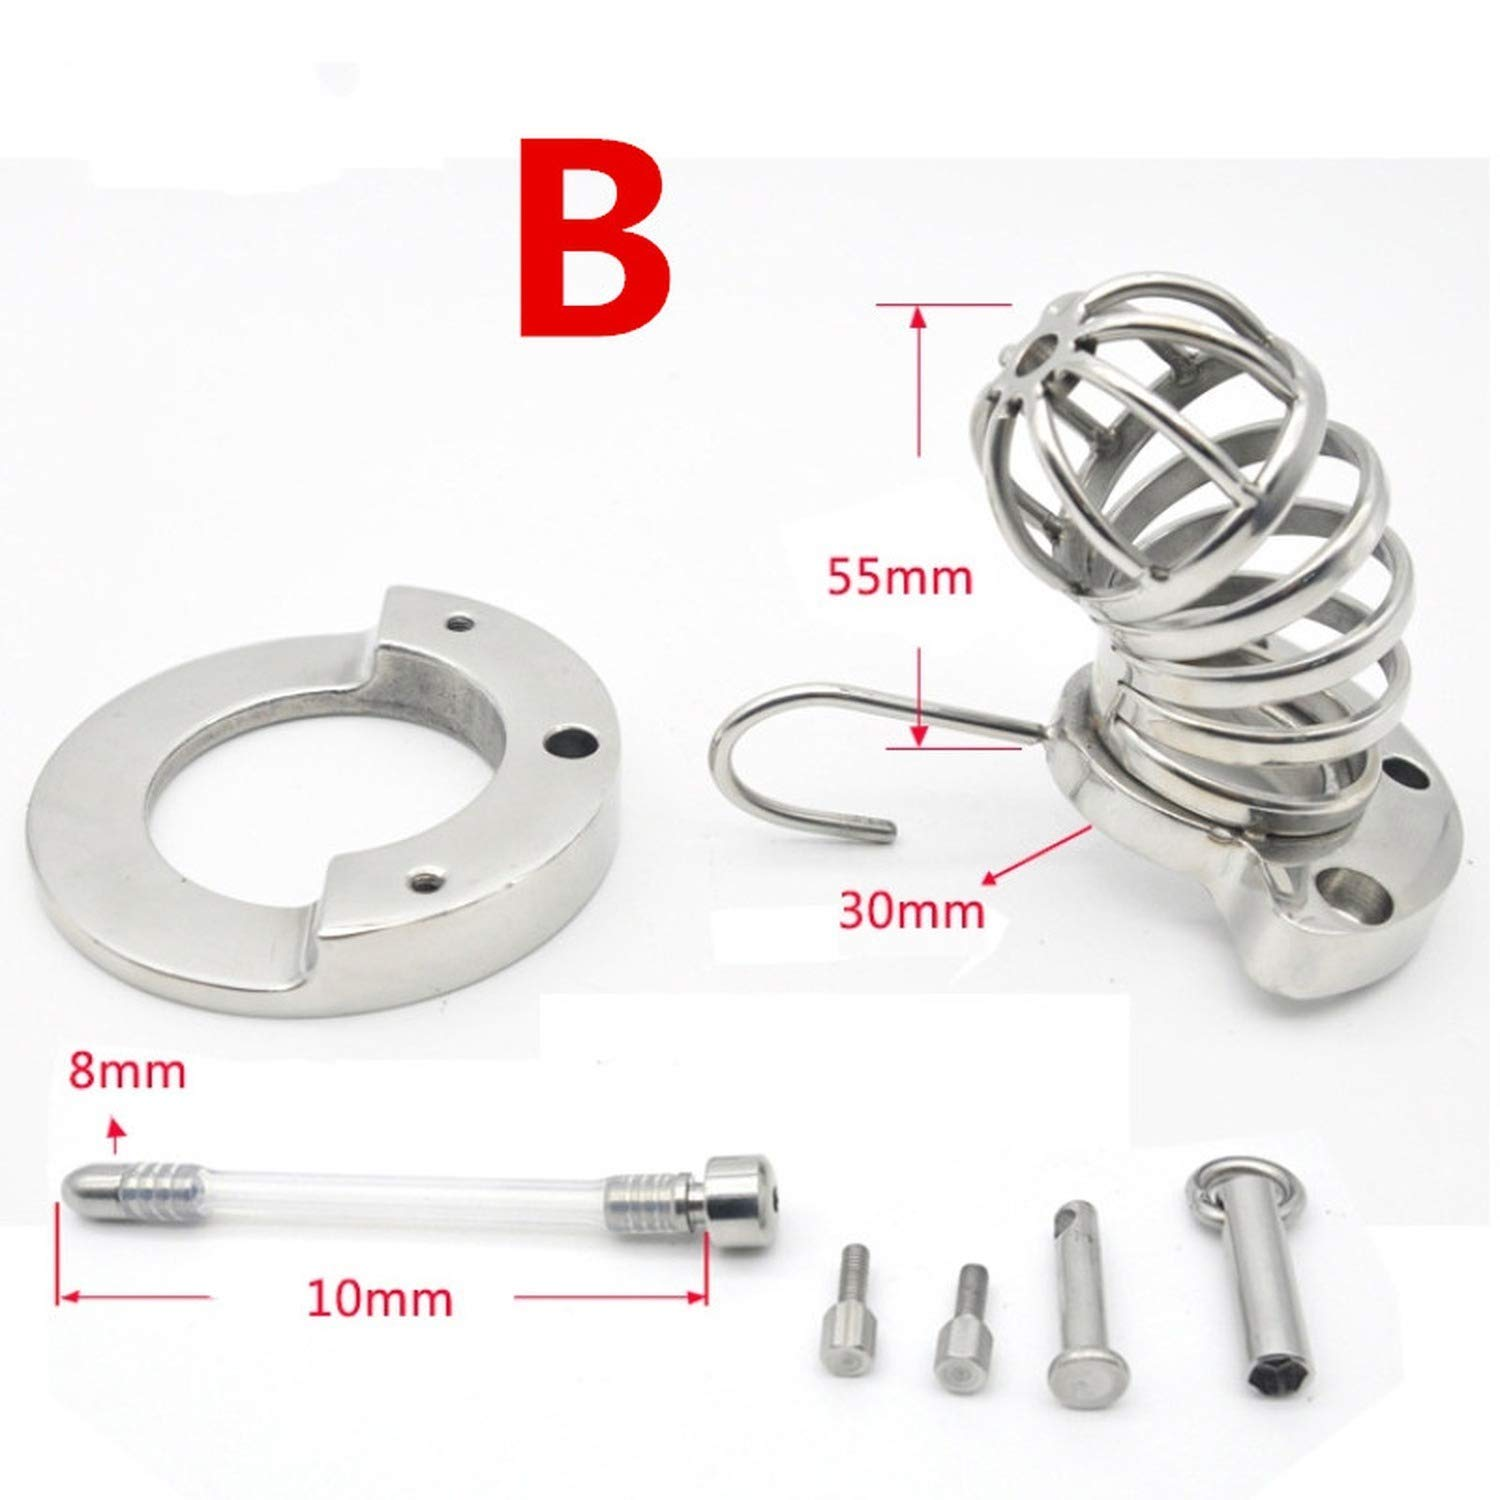 Male Cha'stity Cage 316L Stainless Steel Lock with Soft Sound Càtheter MaleD-ick Cage CBT Intimacy Toy for Man,B with Càtheter,40mm T-Shirt by PIEUFo T-Shirt